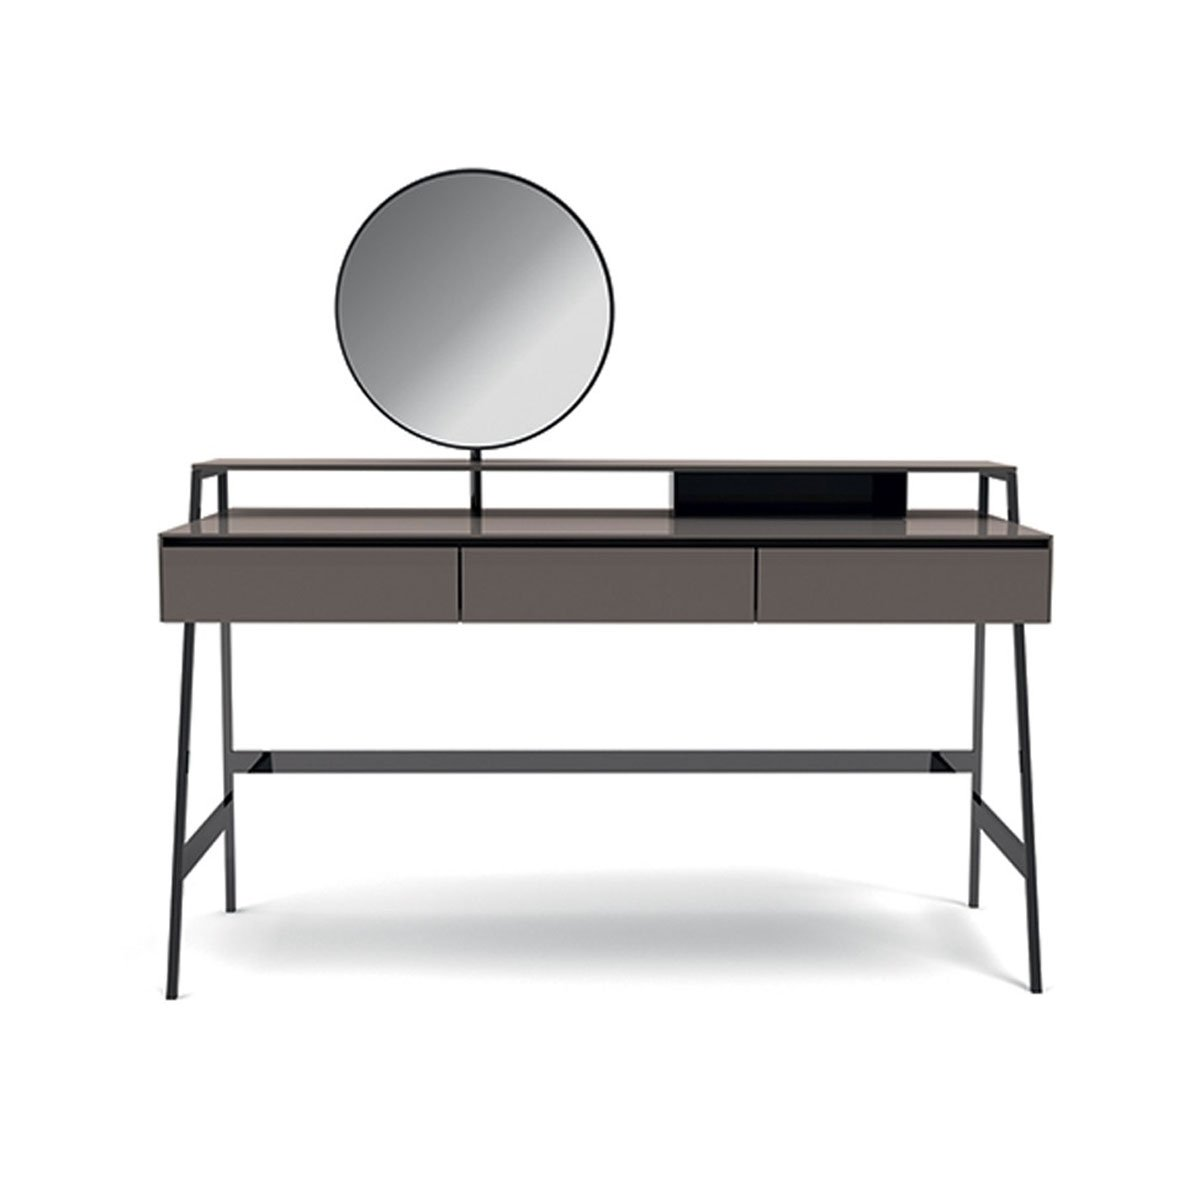 Venere luxury glass desk by gallotti radice klarity glass Mirror glass furniture